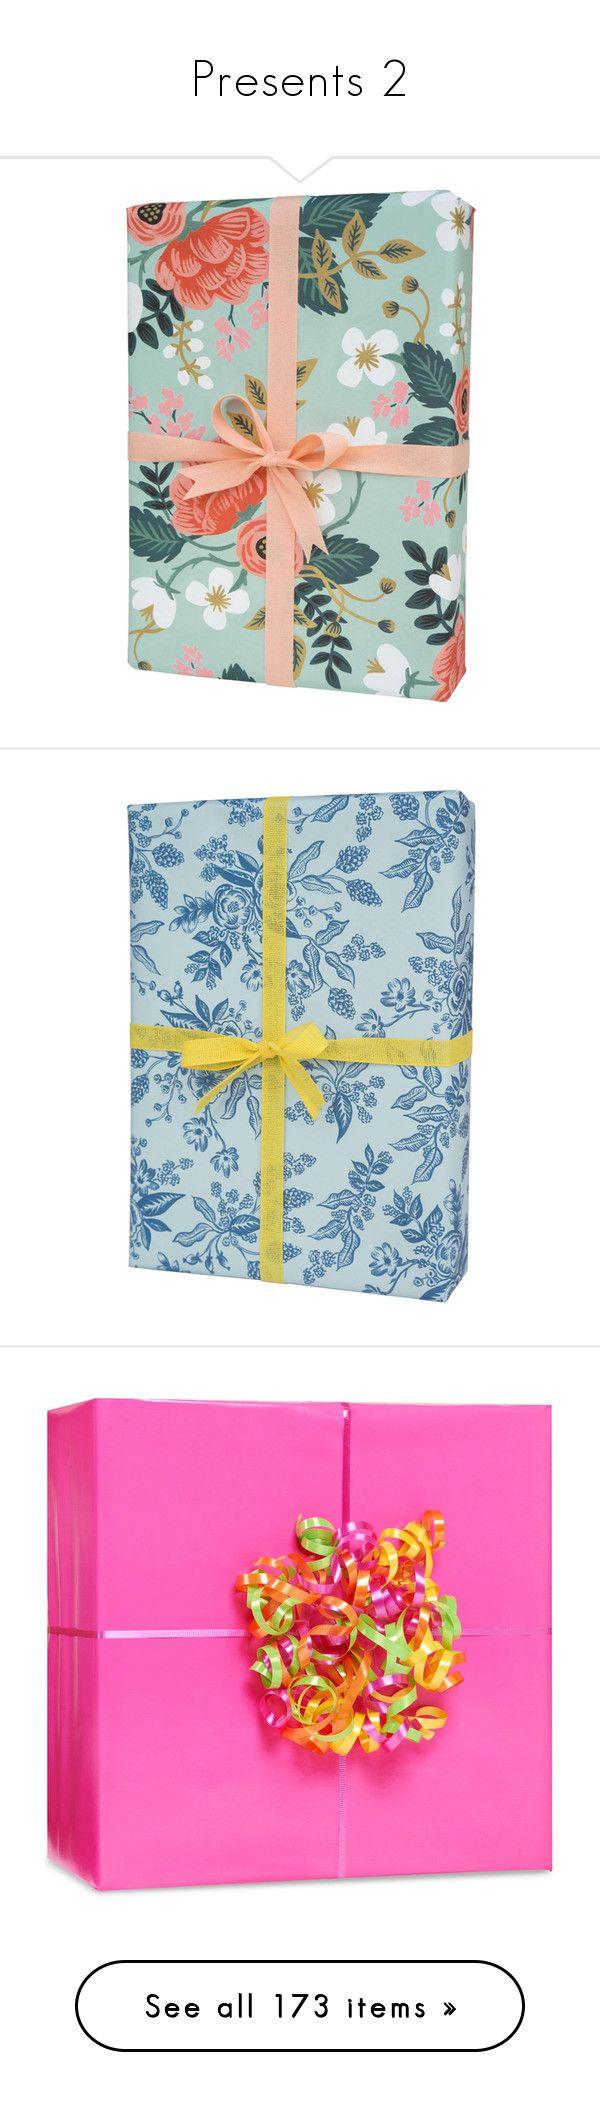 """Presents 2"" by julia-hart ❤ liked on Polyvore featuring home, home decor, holiday decorations, gift boxes, gifts, holiday, holiday home decor, holiday gift wrapping paper, holiday wrapping paper and birch home decor"